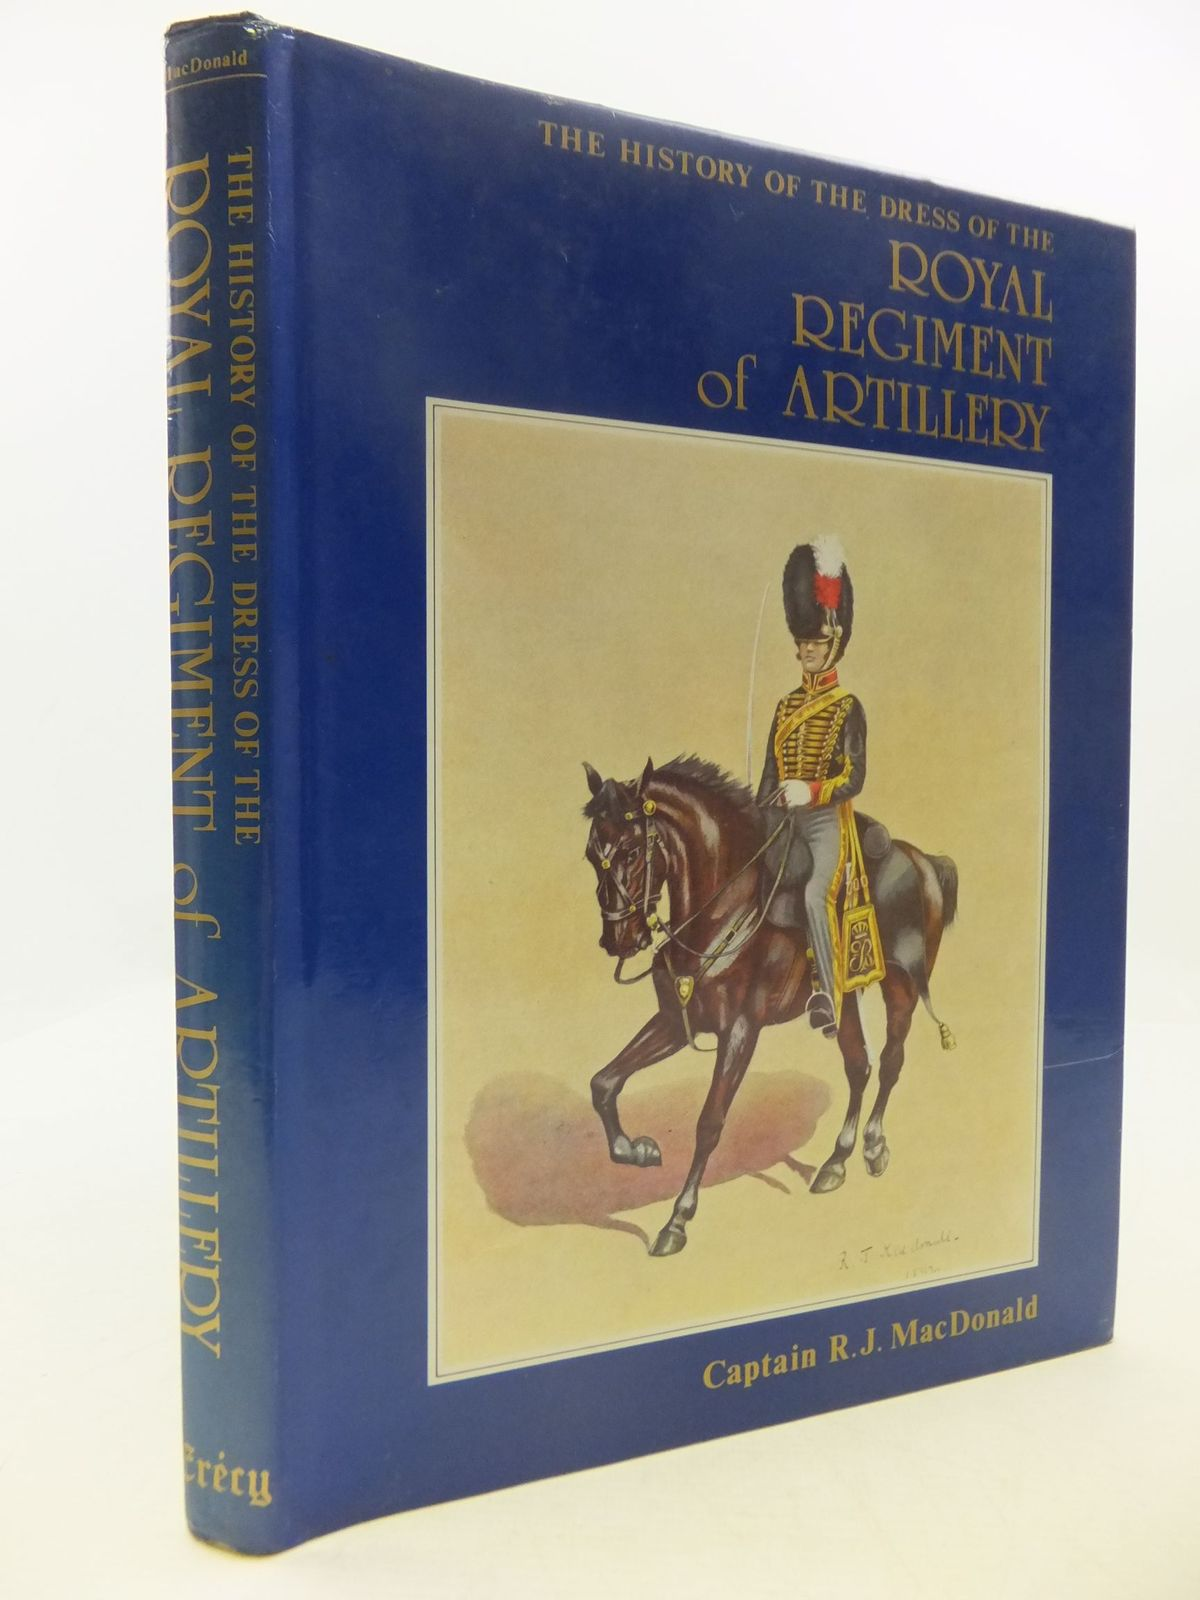 Photo of THE HISTORY OF THE DRESS OF THE ROYAL REGIMENT OF ARTILLERY 1625-1897 written by Macdonald, R.J. illustrated by Macdonald, R.J. published by Crecy Books (STOCK CODE: 1708713)  for sale by Stella & Rose's Books